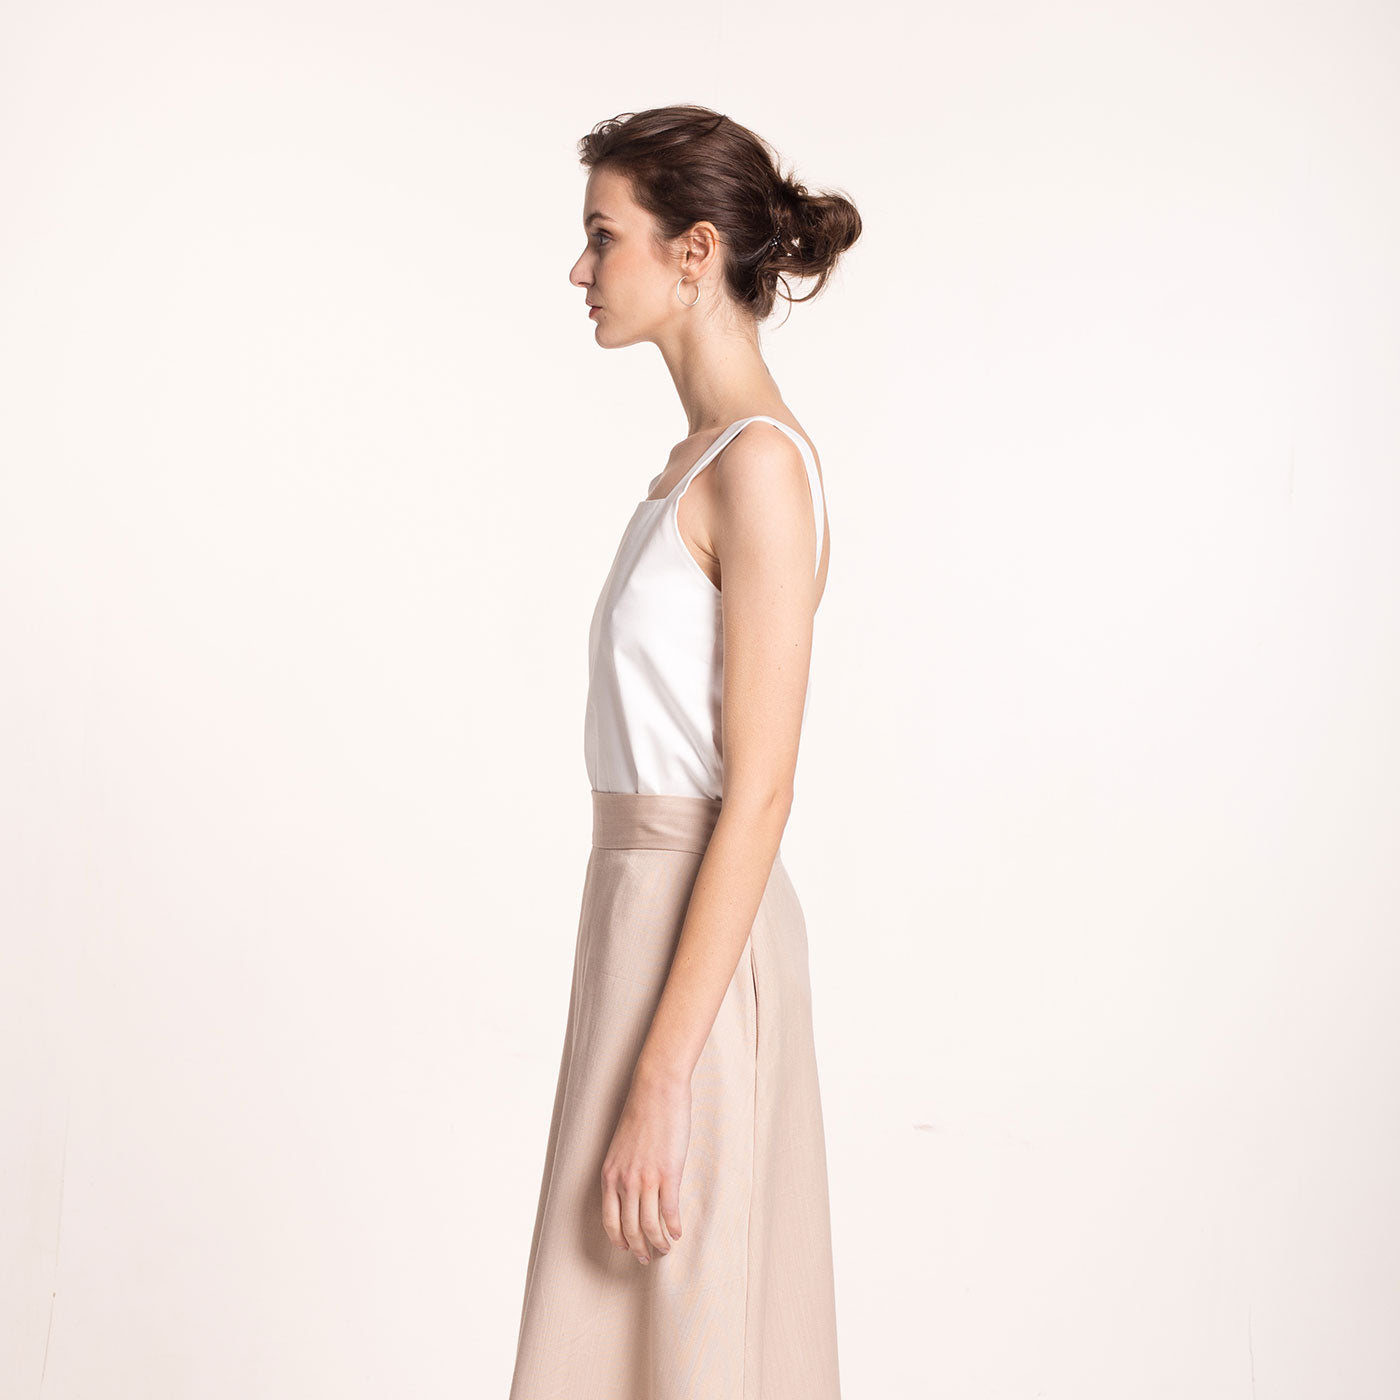 The model wears a white, sustainable, organic cotton, wide straps top, side view.